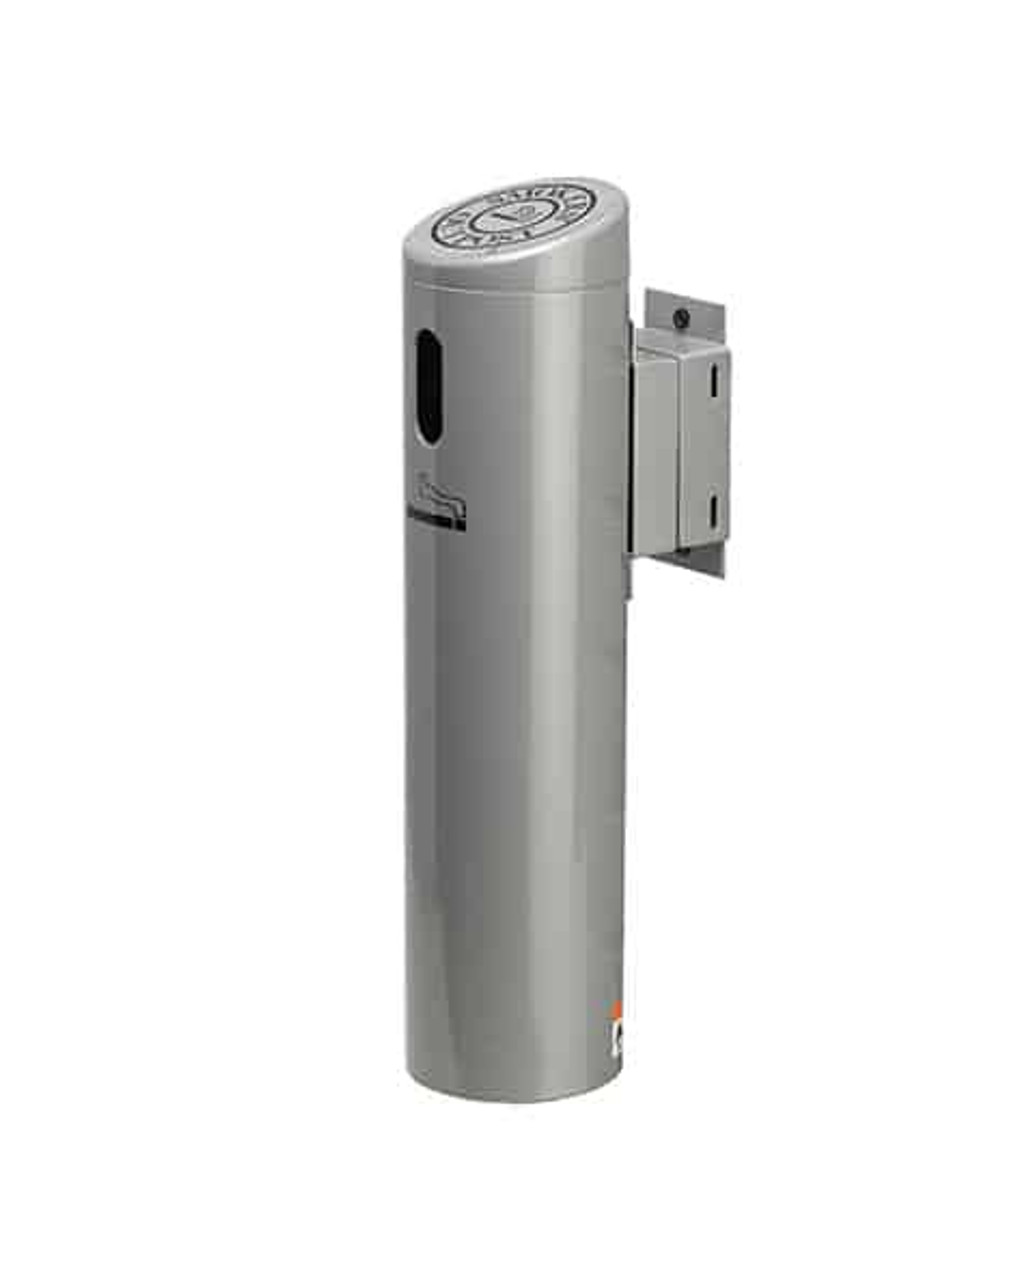 Lockable Smokers Outpost Swivel Wall Mount Outdoor Ashtray Silver